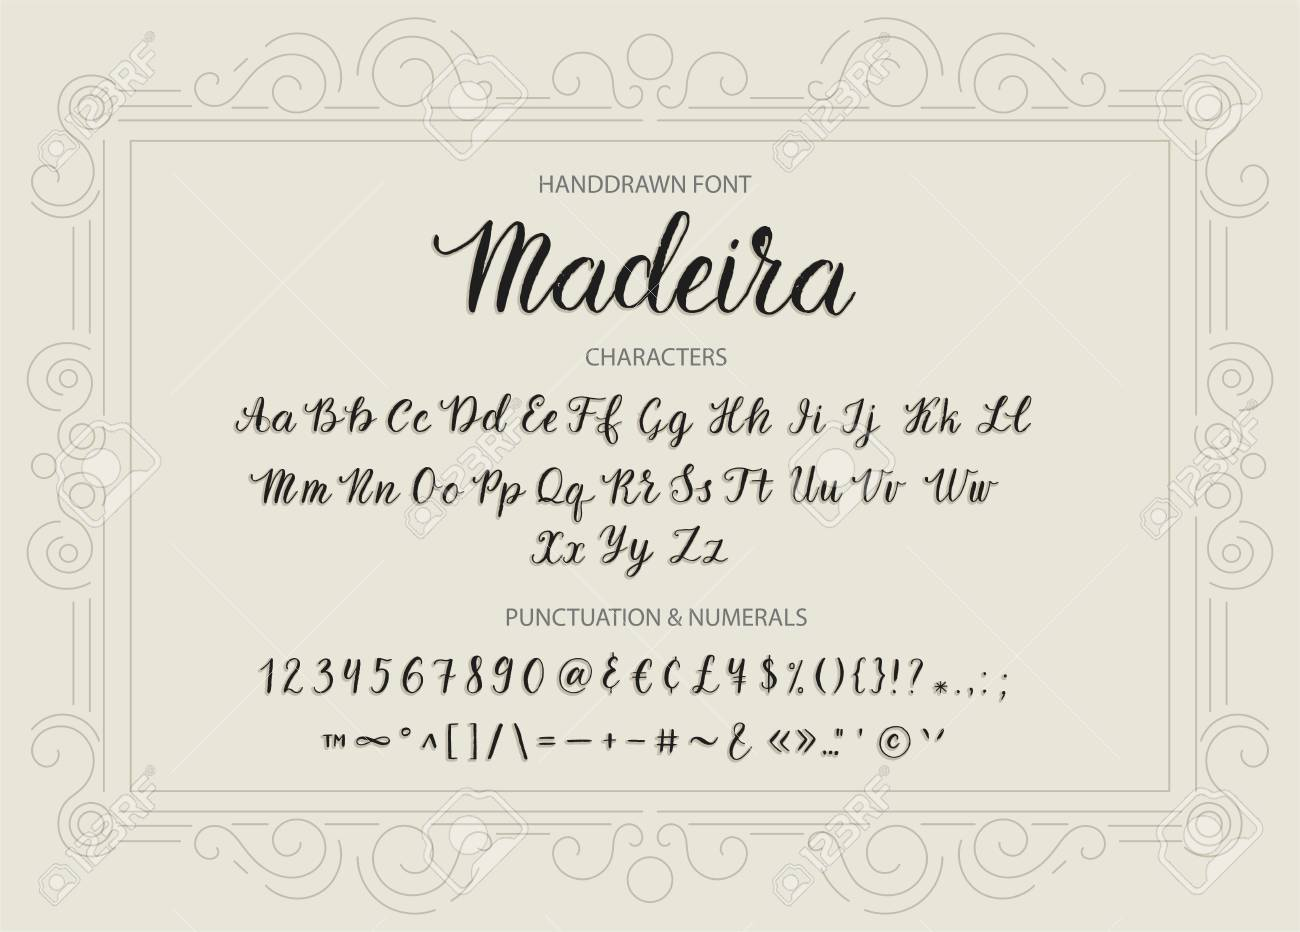 Handdrawn Vector Script font  Brush style textured calligraphy